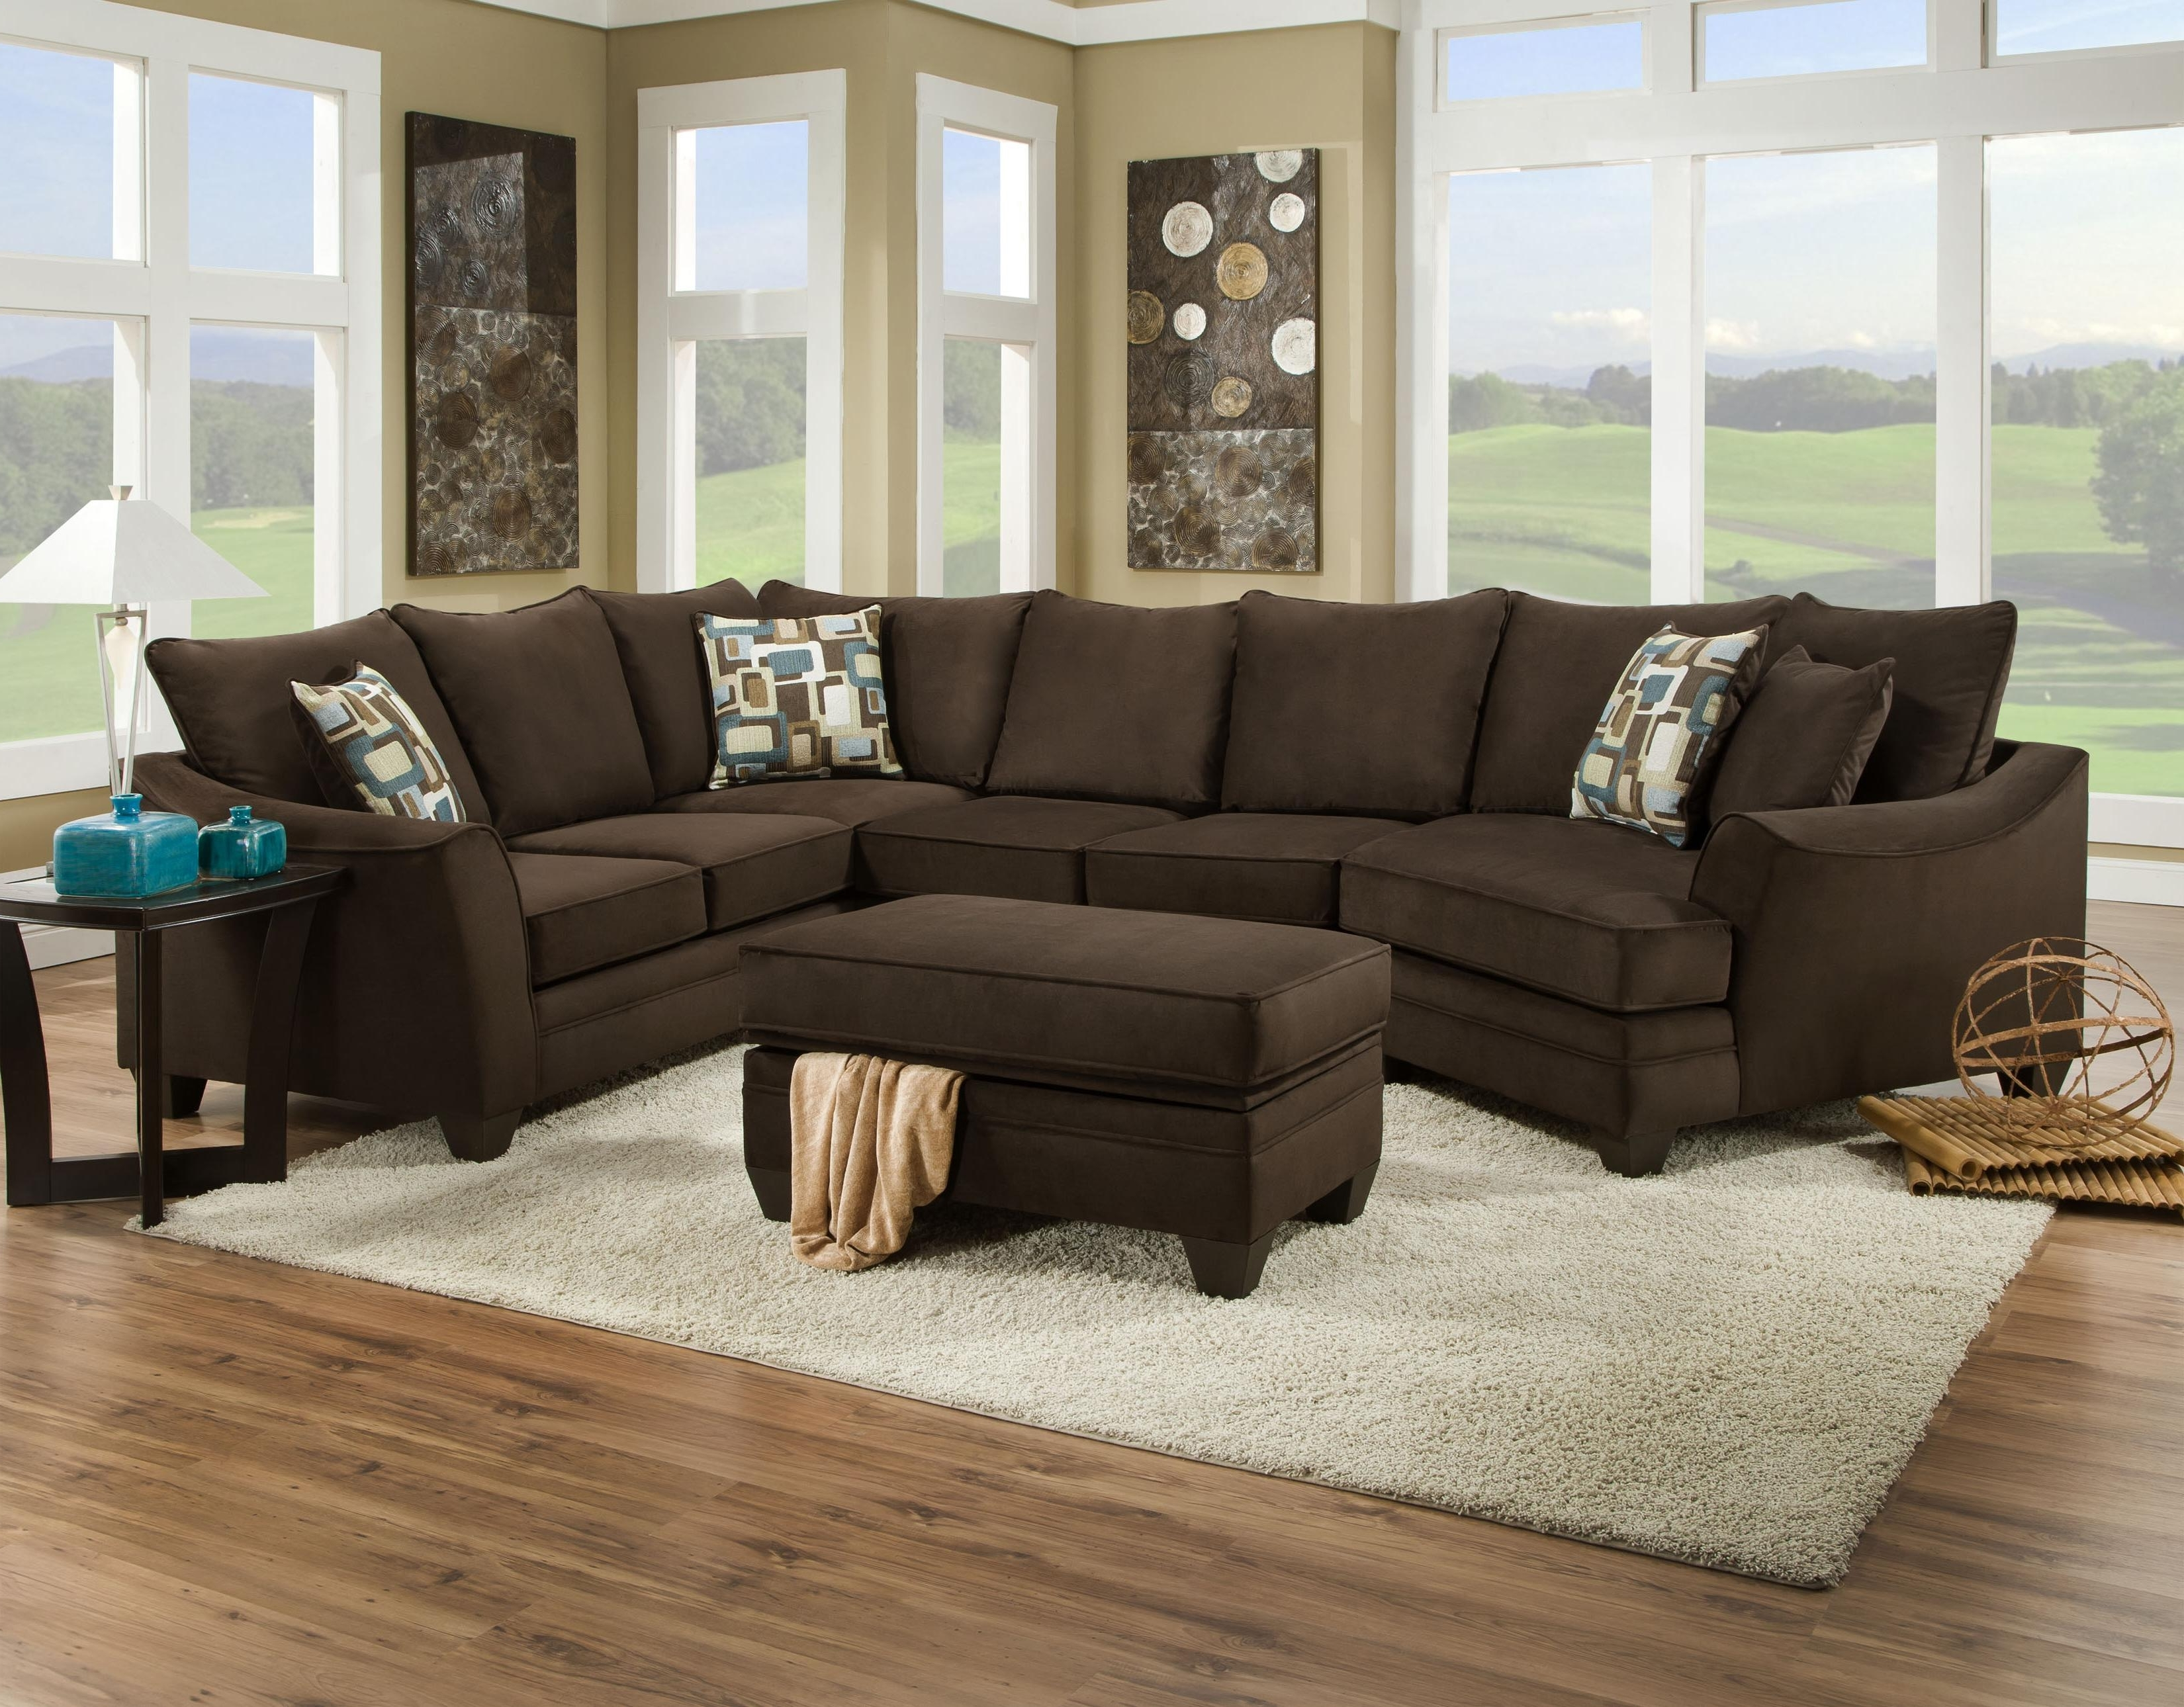 2018 North Carolina Sectional Sofas In American Furniture 3810 Sectional Sofa That Seats 5 With Left Side (View 9 of 15)